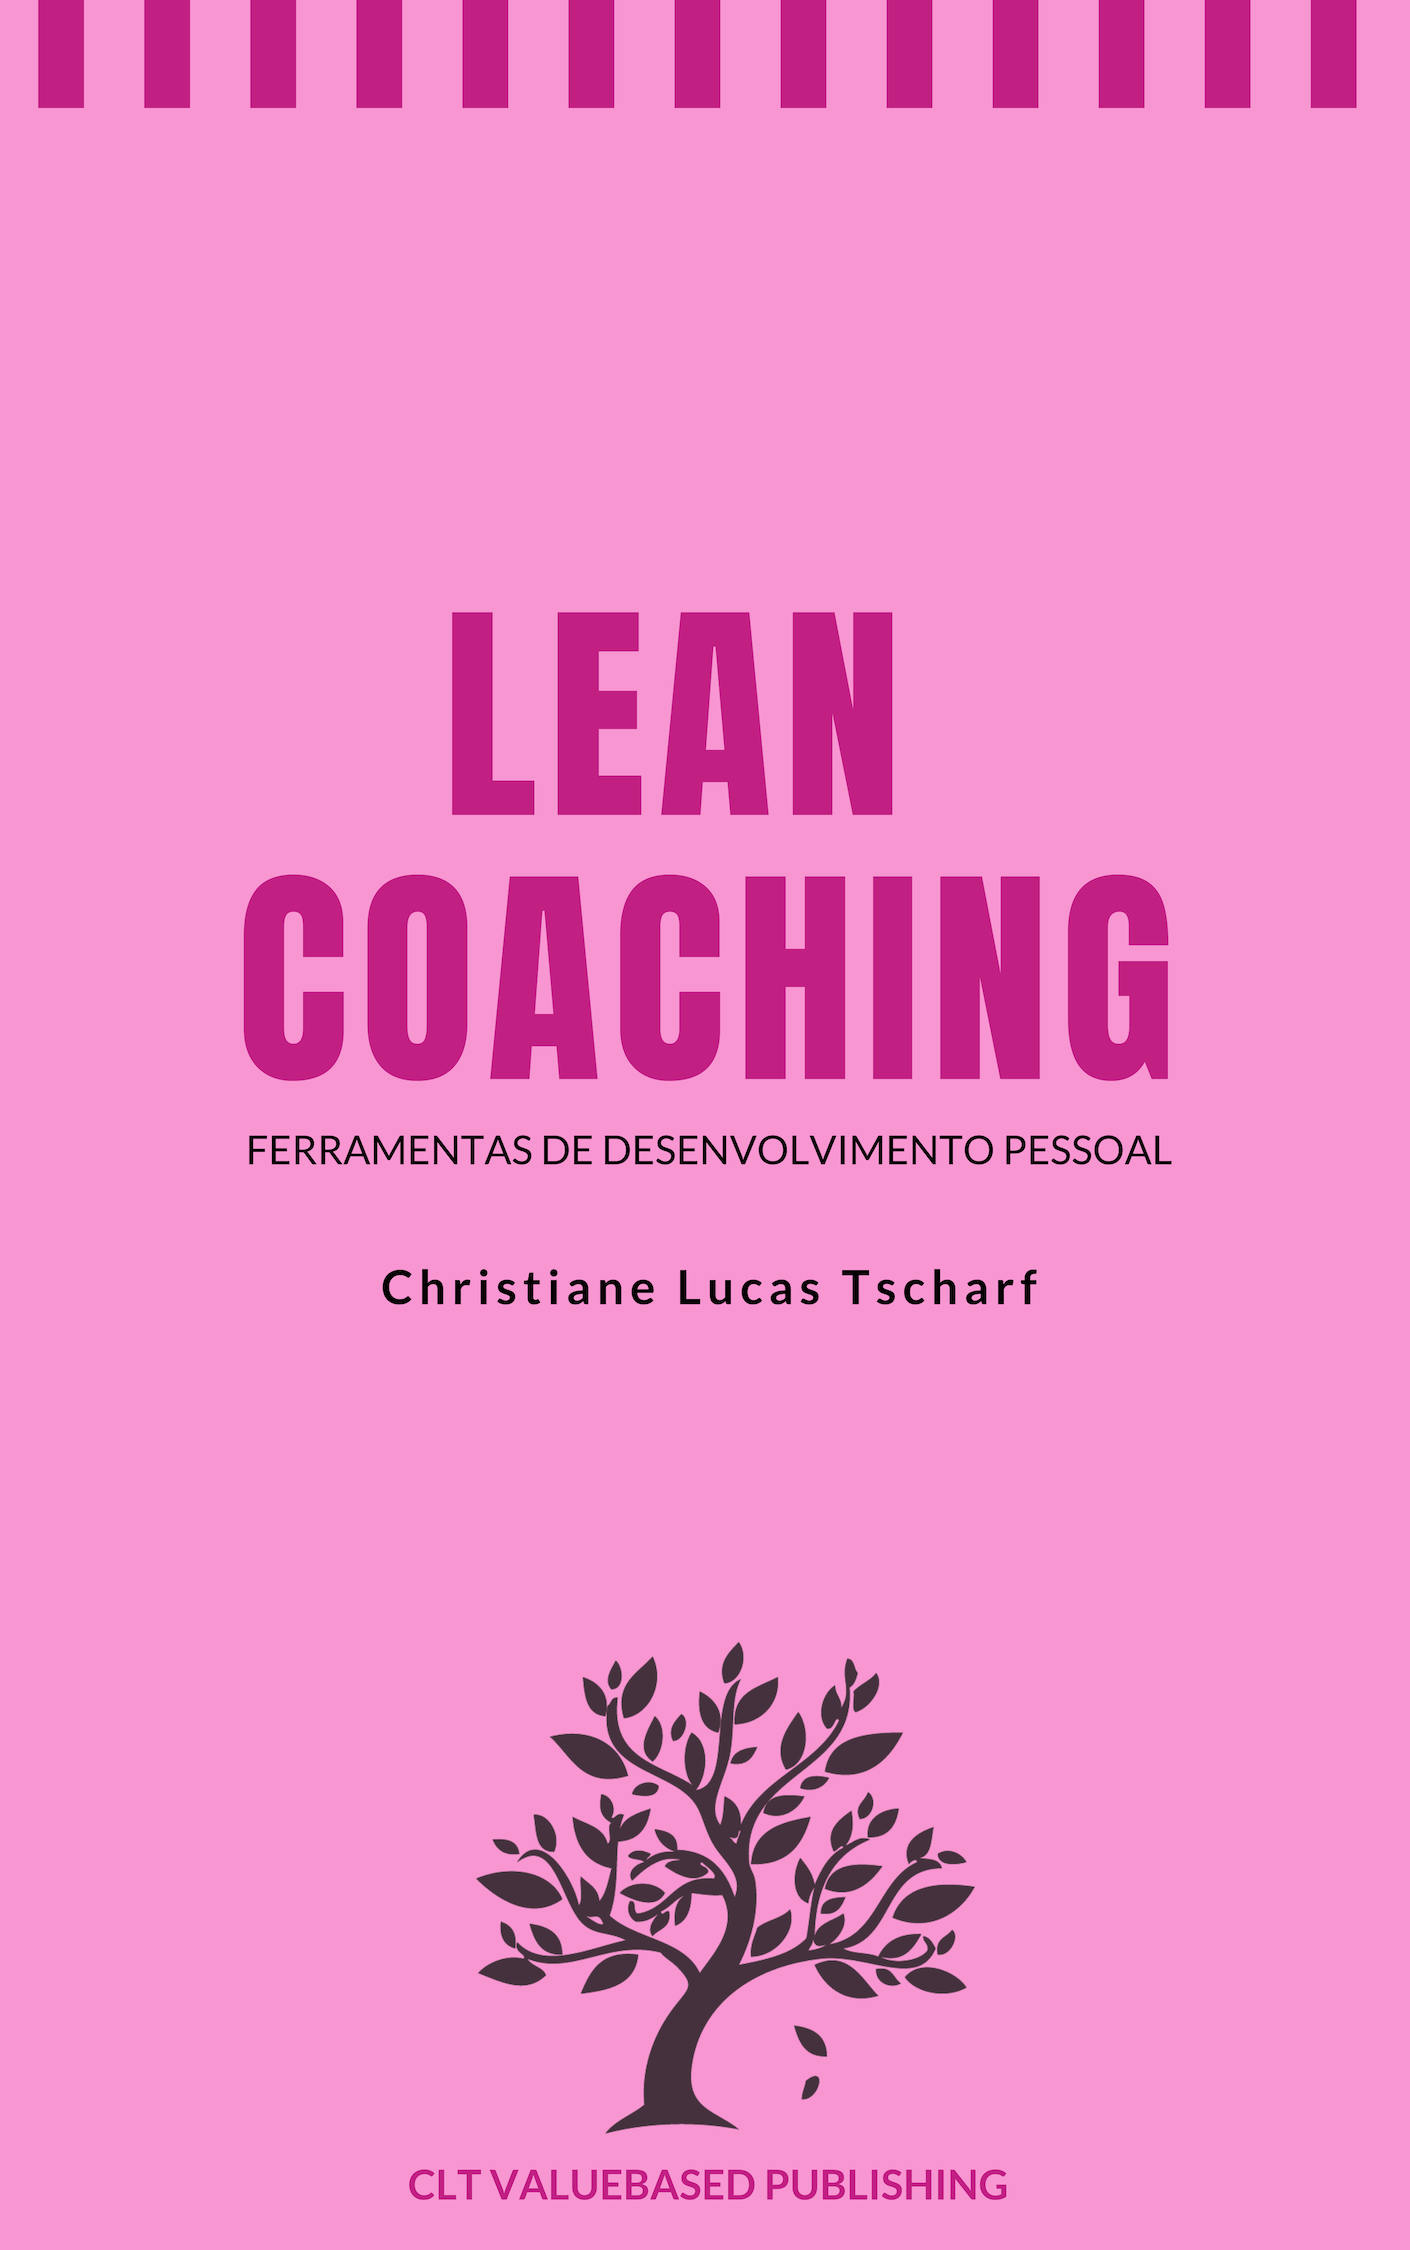 LEAN COACHING